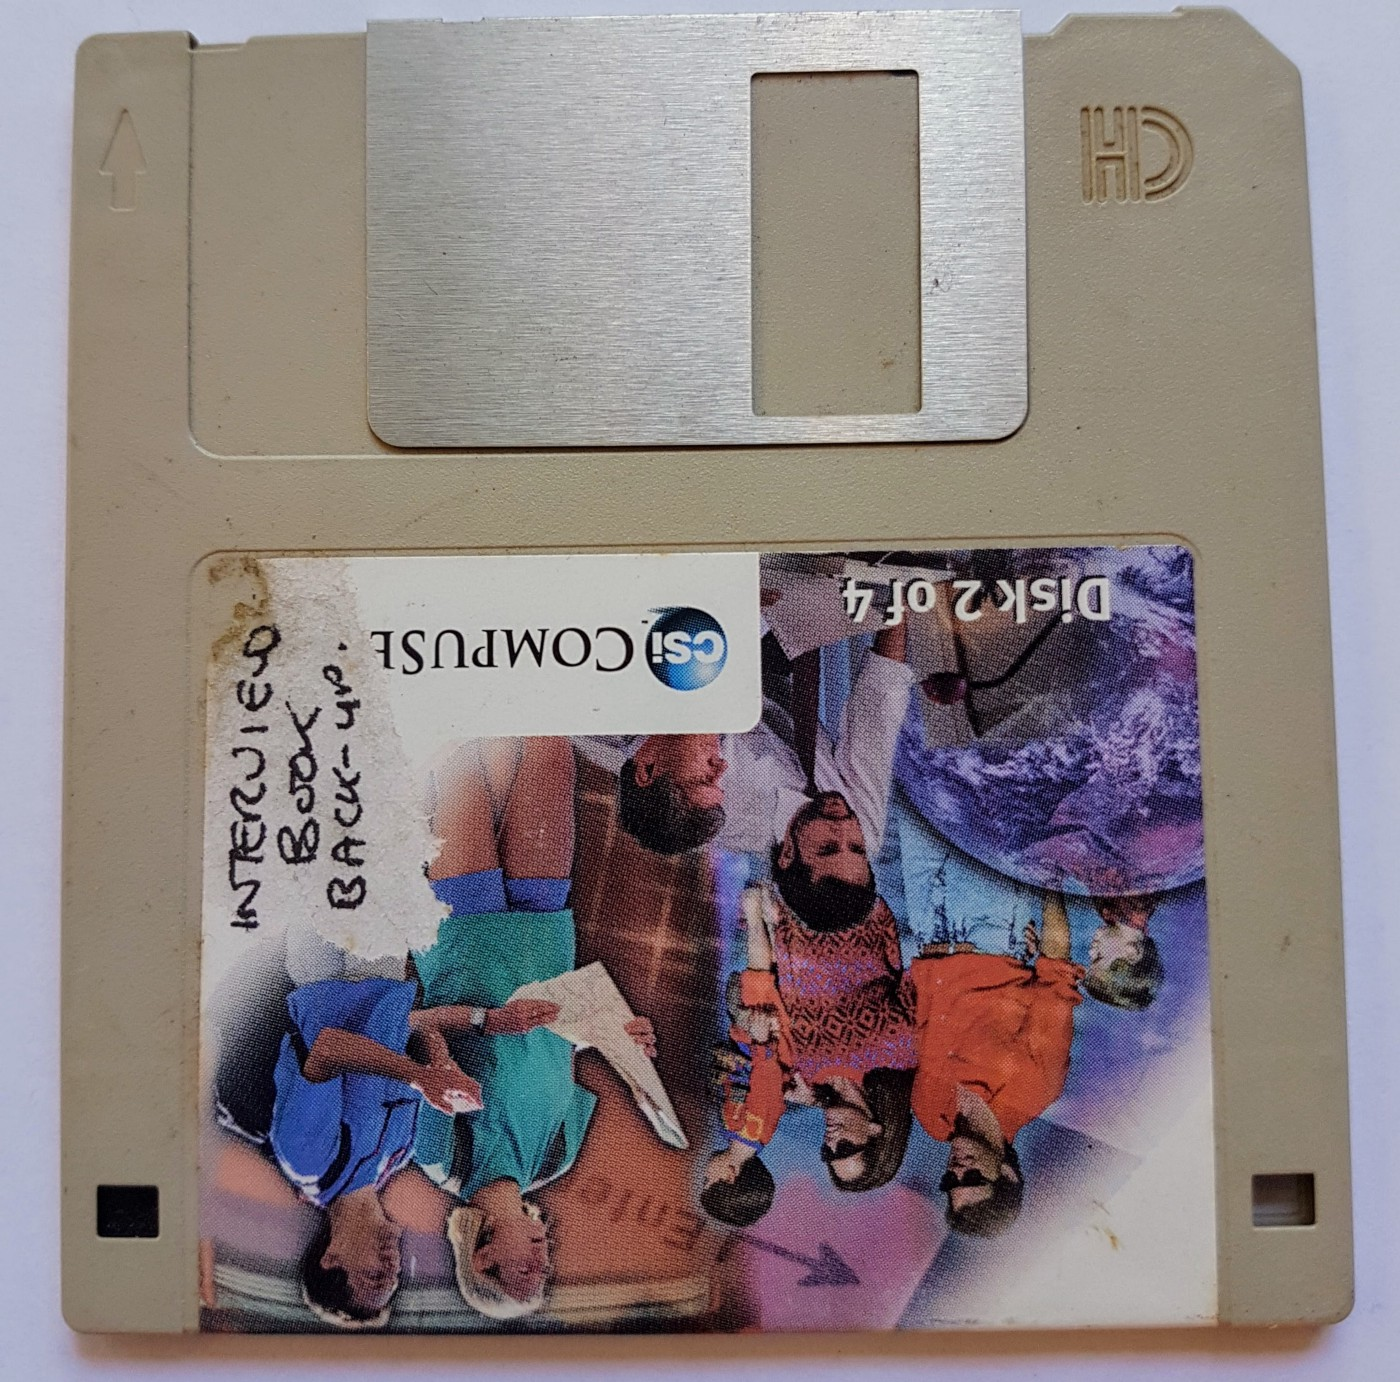 Picture of the floppy disk used for 'Interview book back-up'